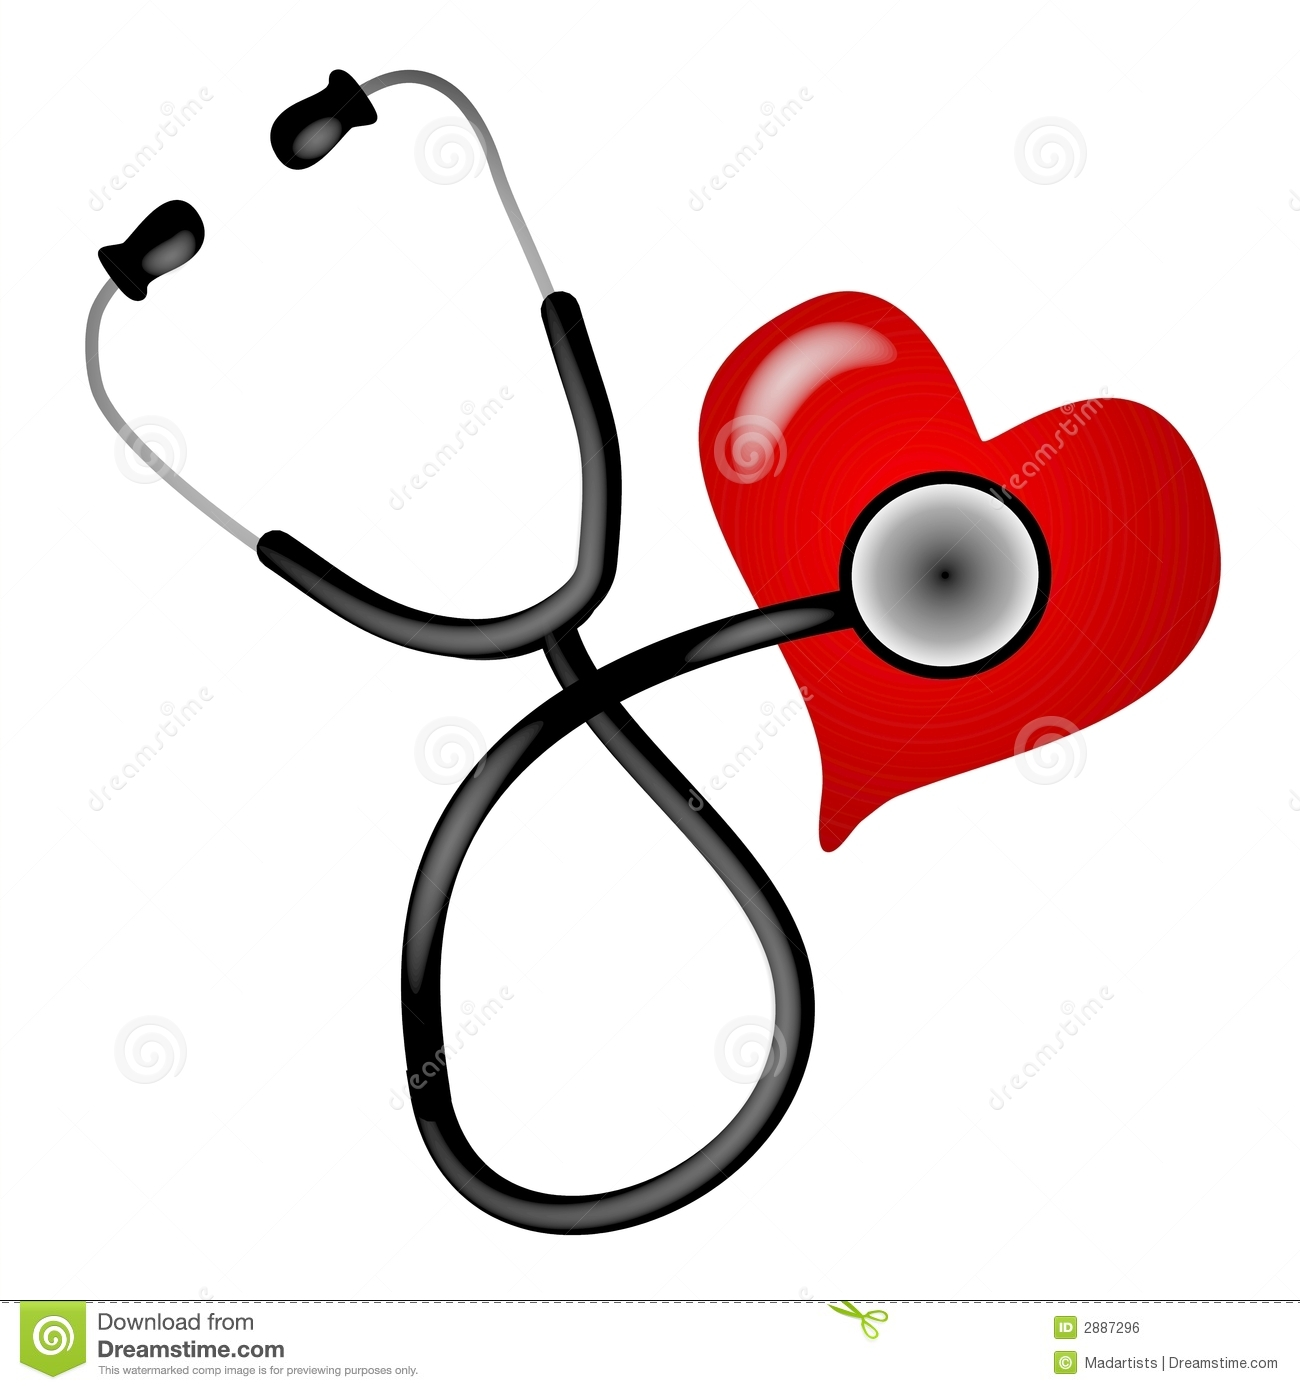 Stethoscope Clipart Free Clip Art Images